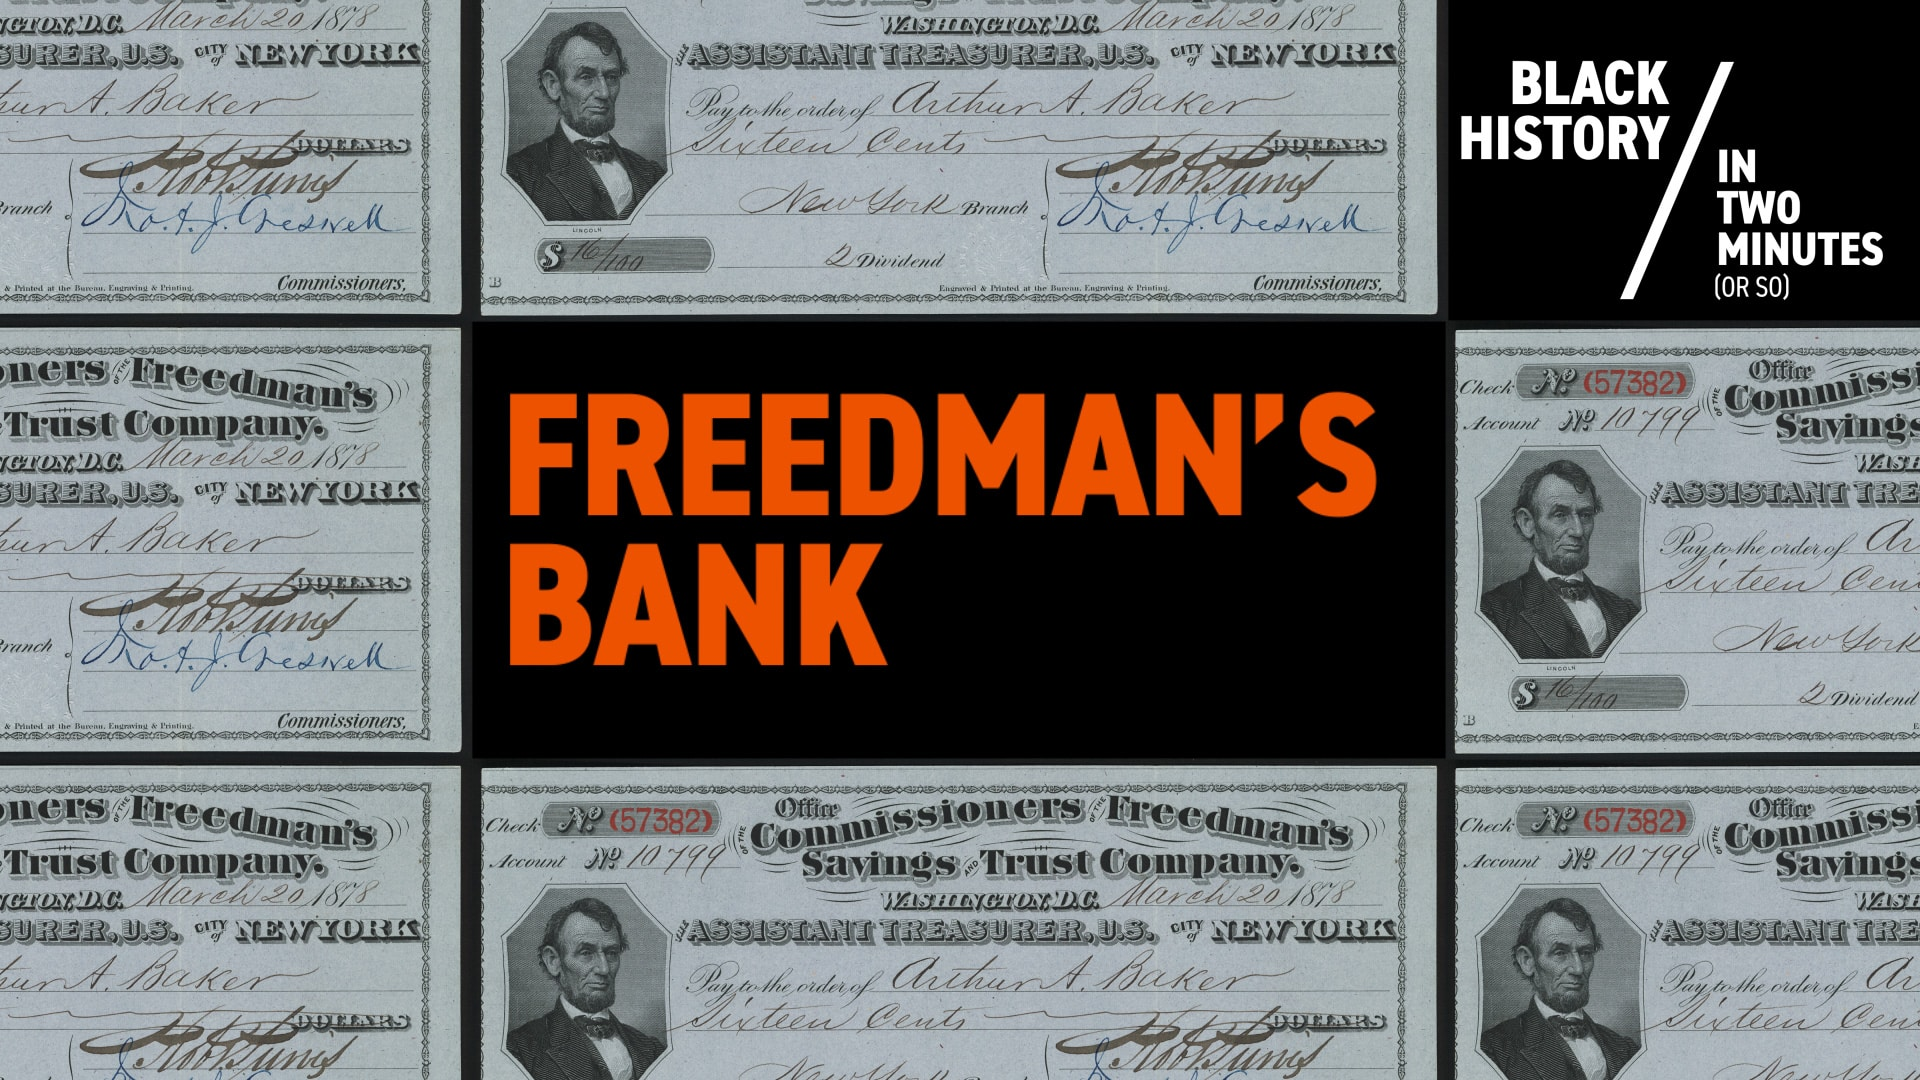 The Freedmans Bank | Black History in Two Minutes